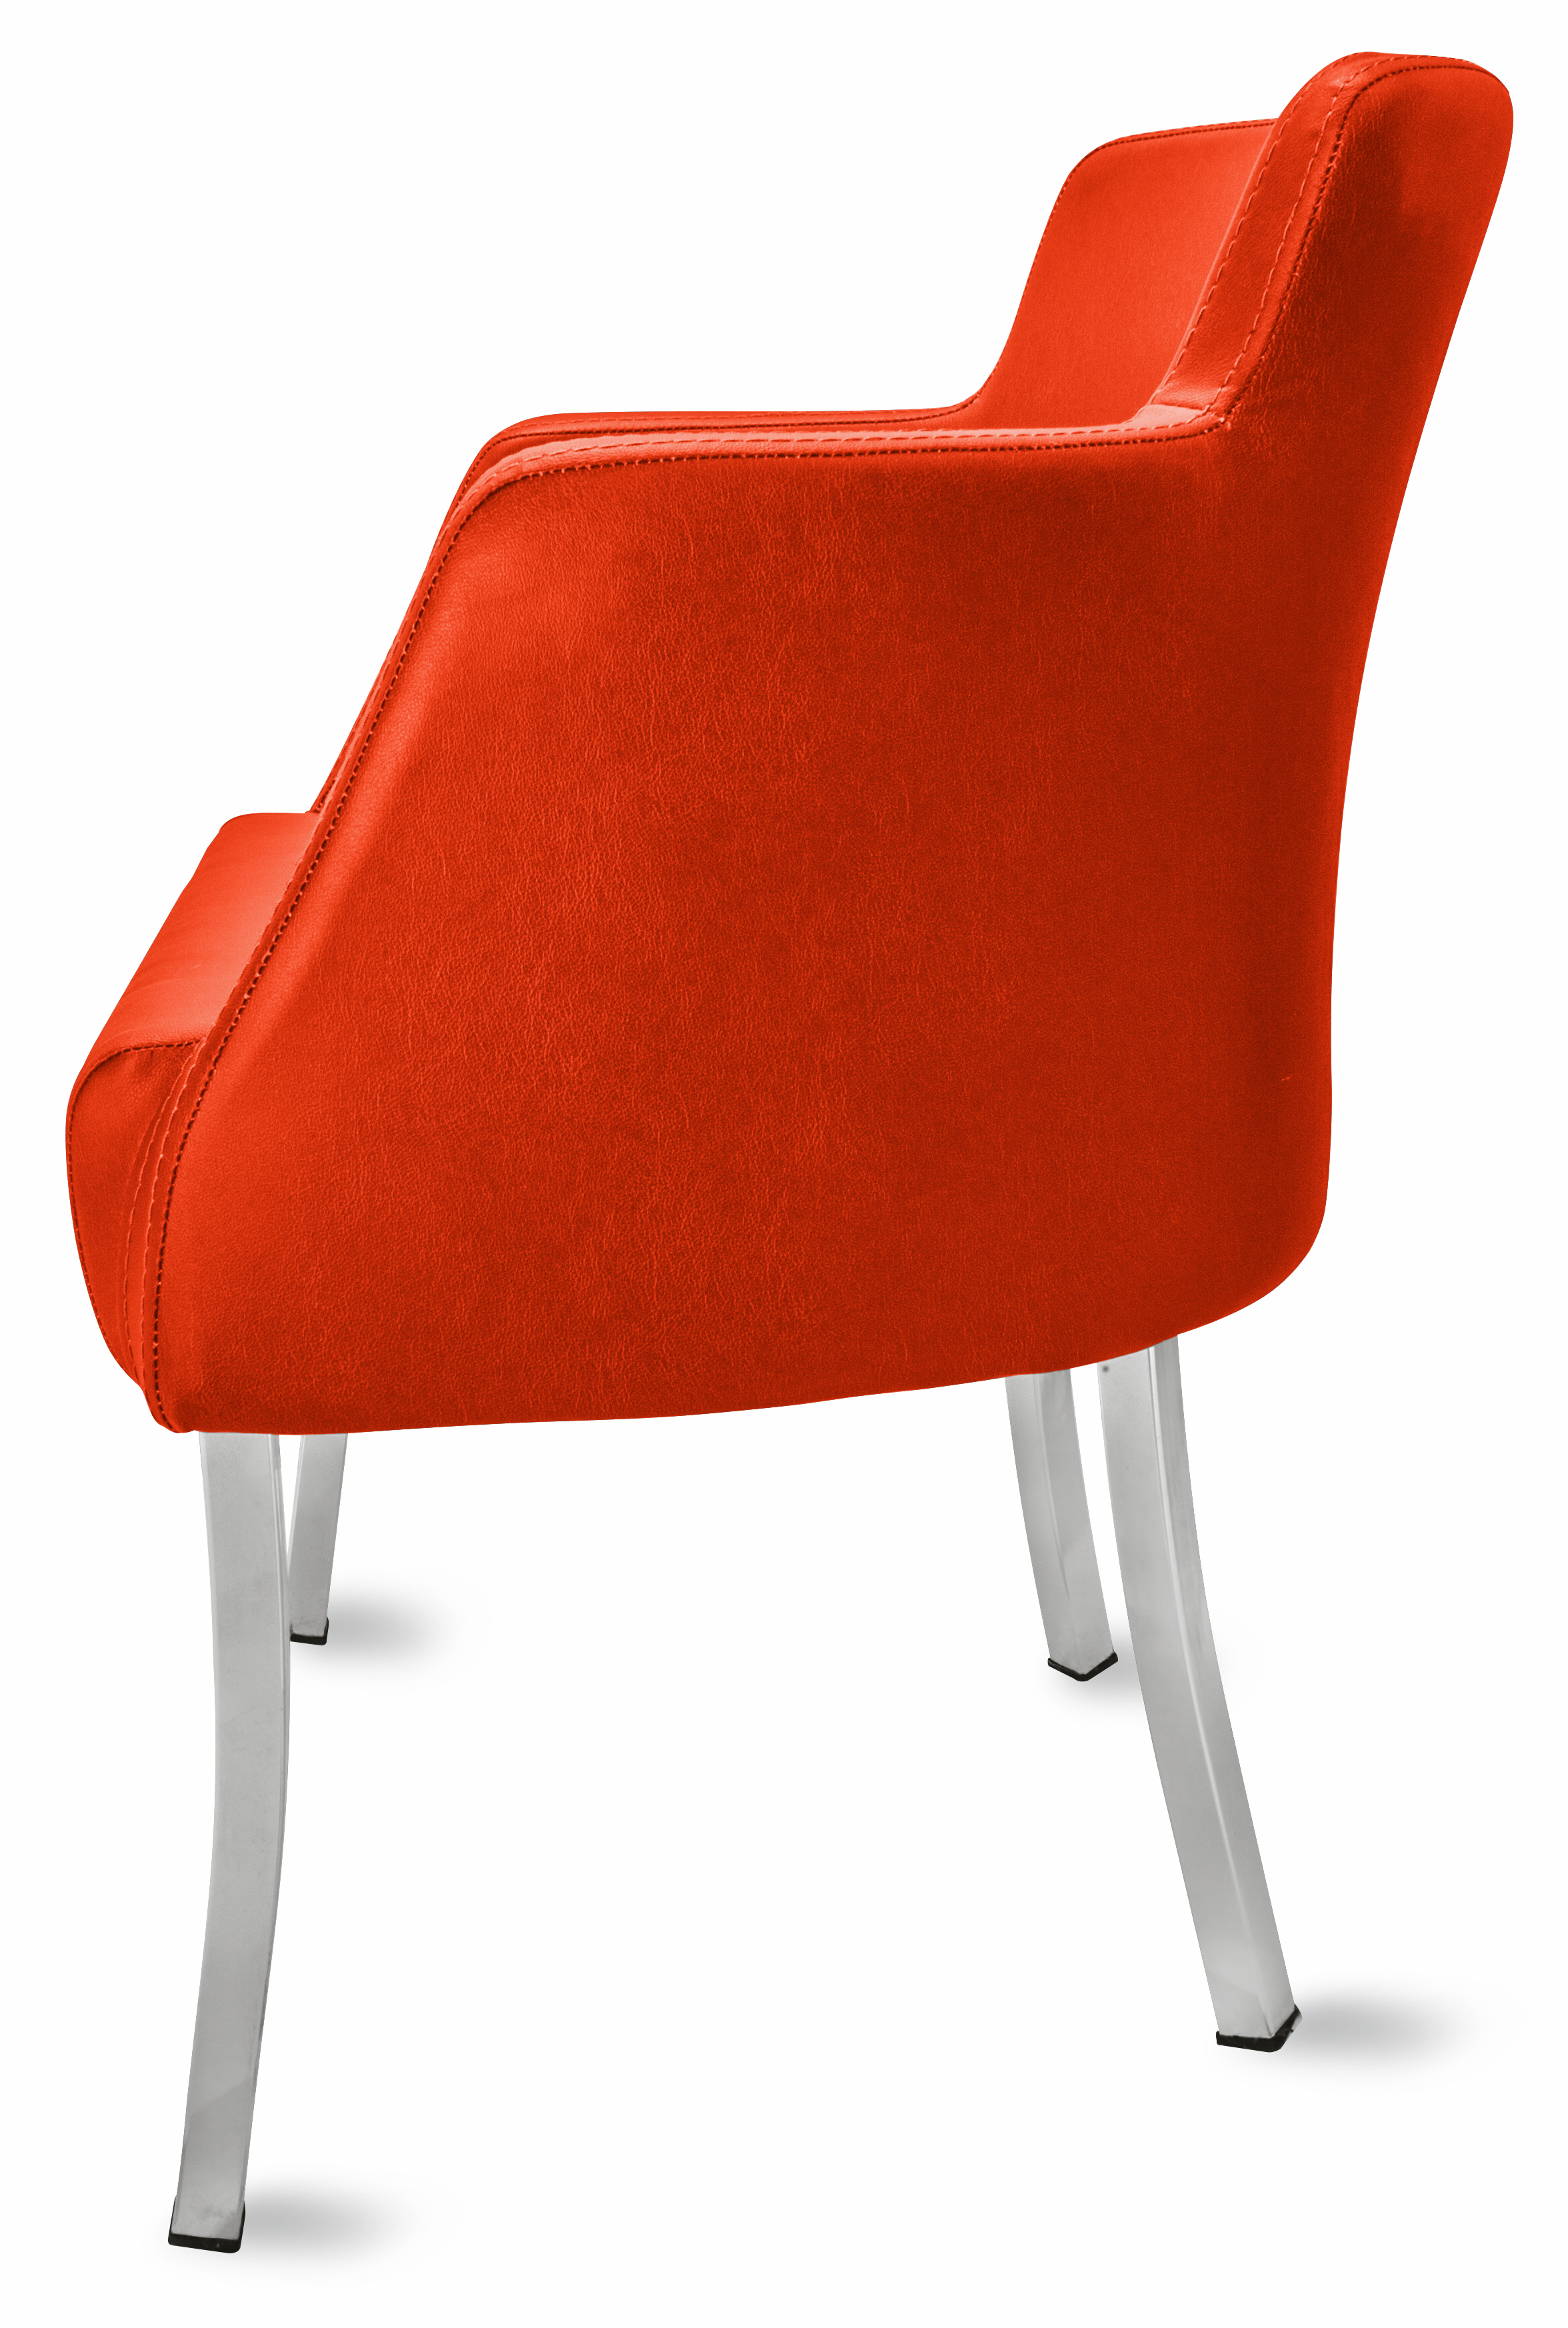 Gastro stuhl sessel primo orange g nstig kaufen m bel star for Sessel orange